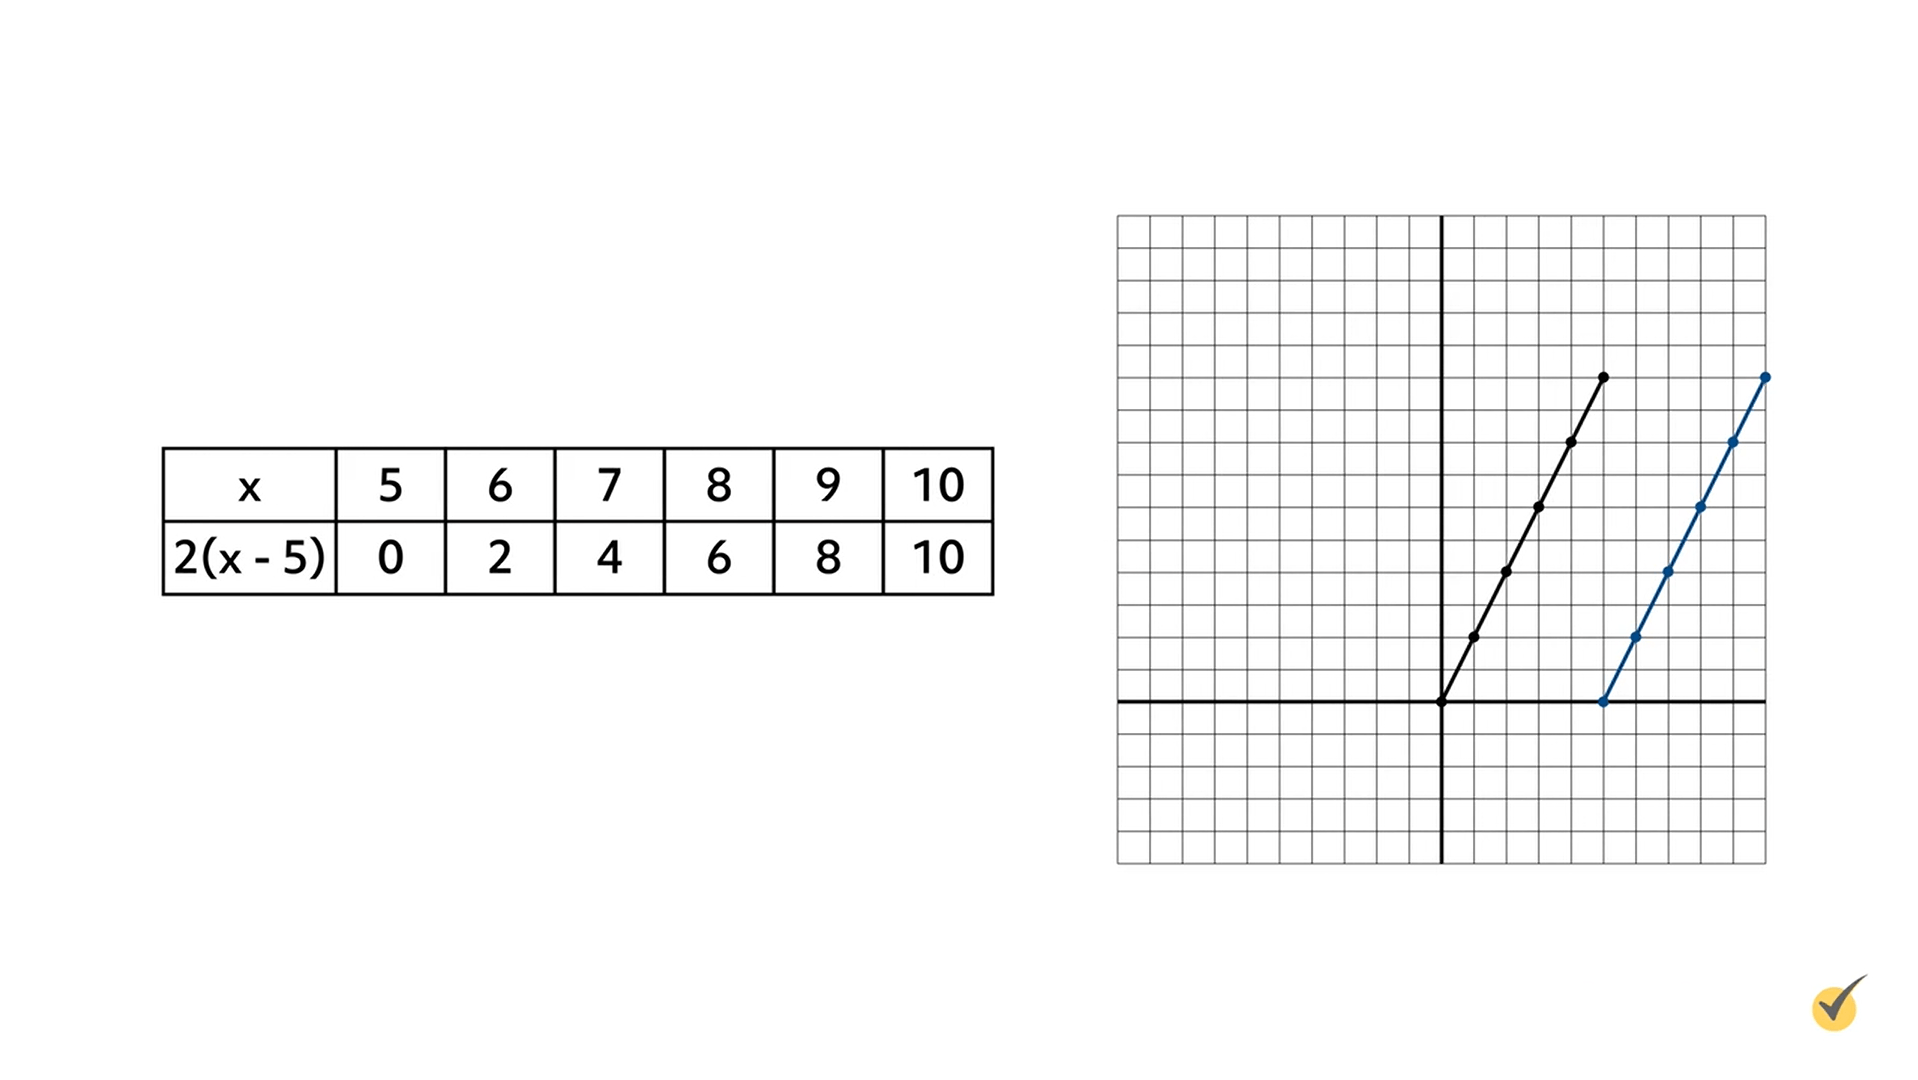 Image of table x over 2)x-5) plotted on a graph.